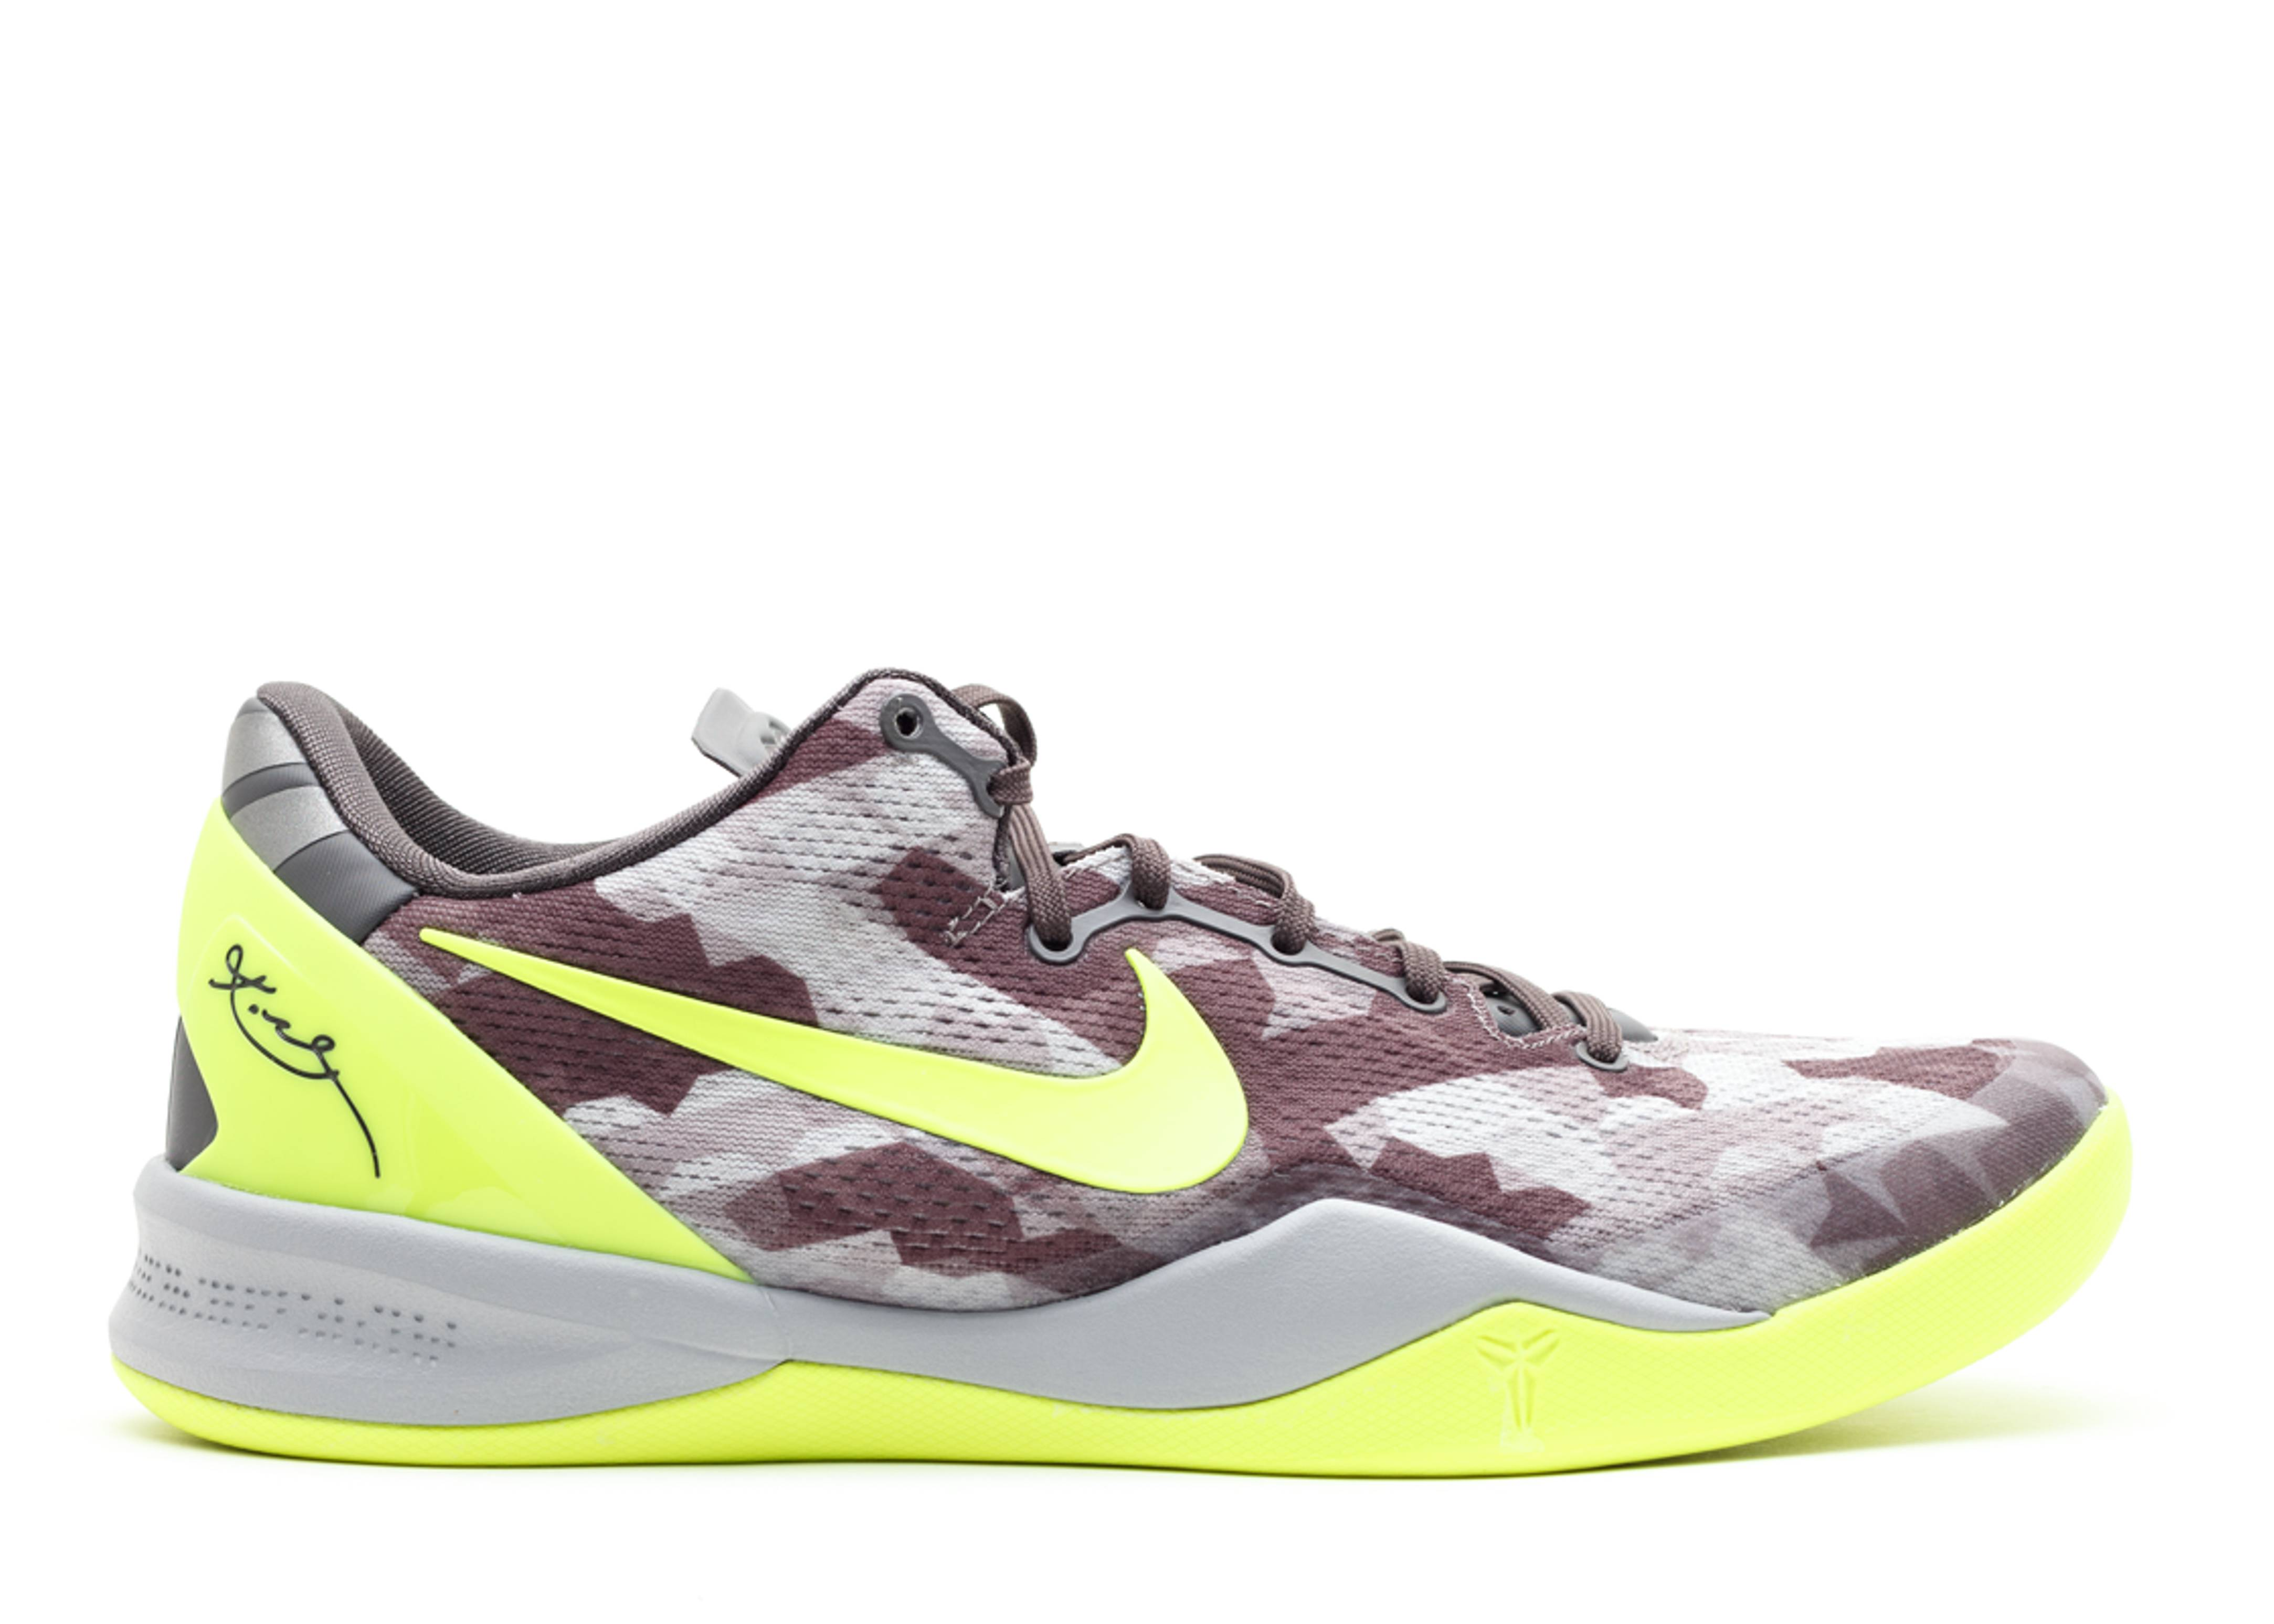 kobe 8 system grey camo nike 555035 063 sport grey. Black Bedroom Furniture Sets. Home Design Ideas